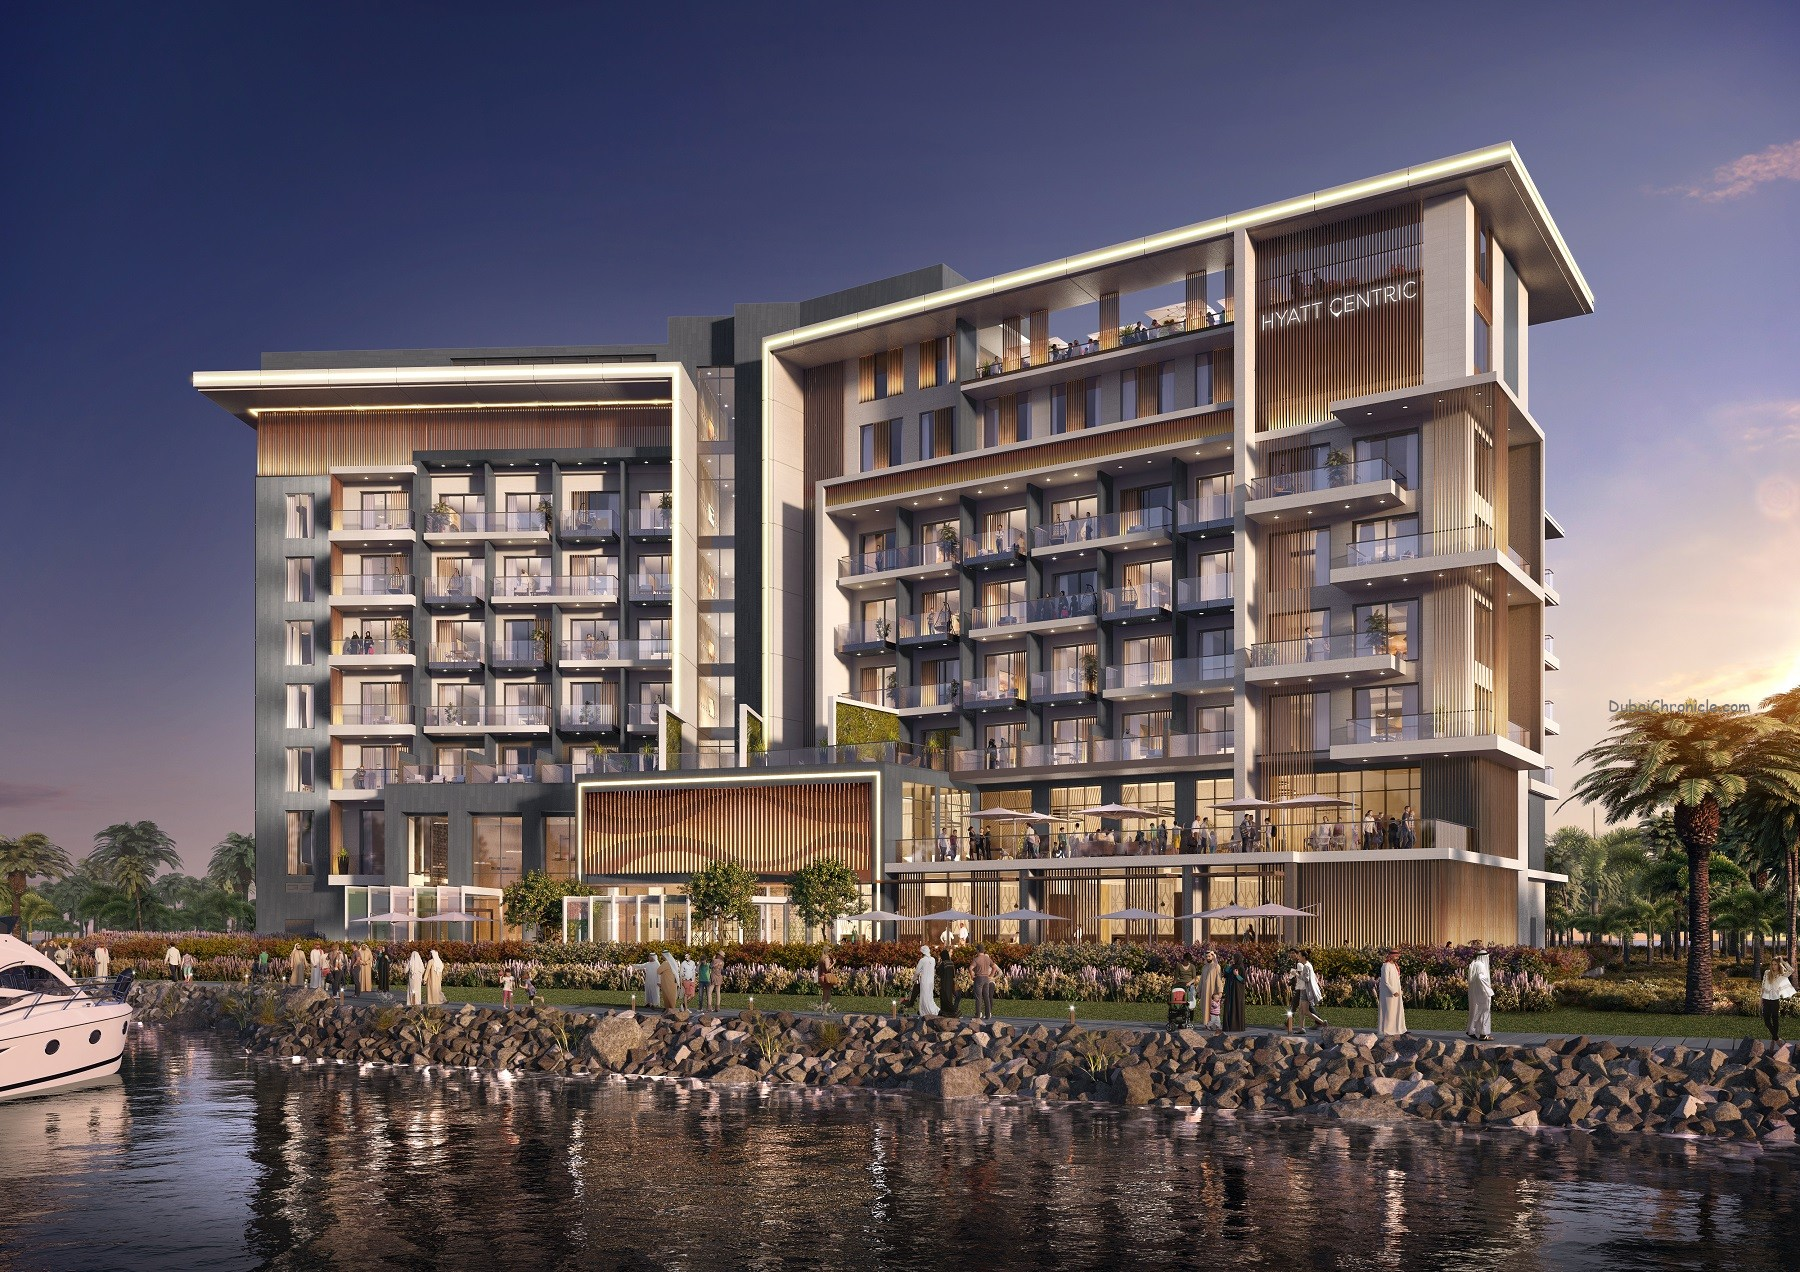 wasl Hospitality and Leisure Sets to Add Four New Hotels to Dubai's Hospitality Sector